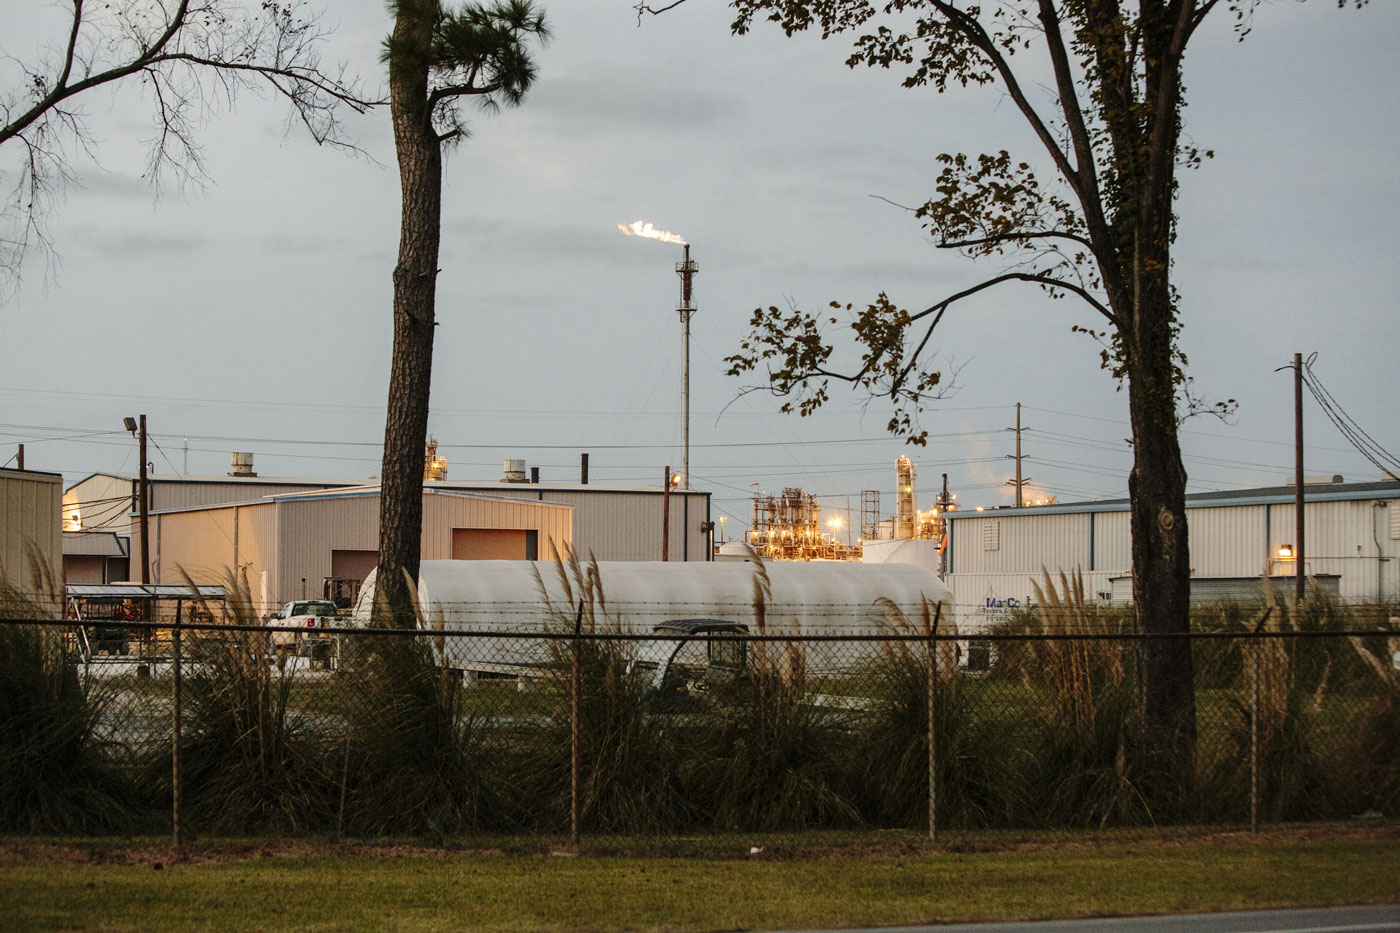 A gas flare inside the Sasol plant, Oct. 22, 2015, Westlake, La.